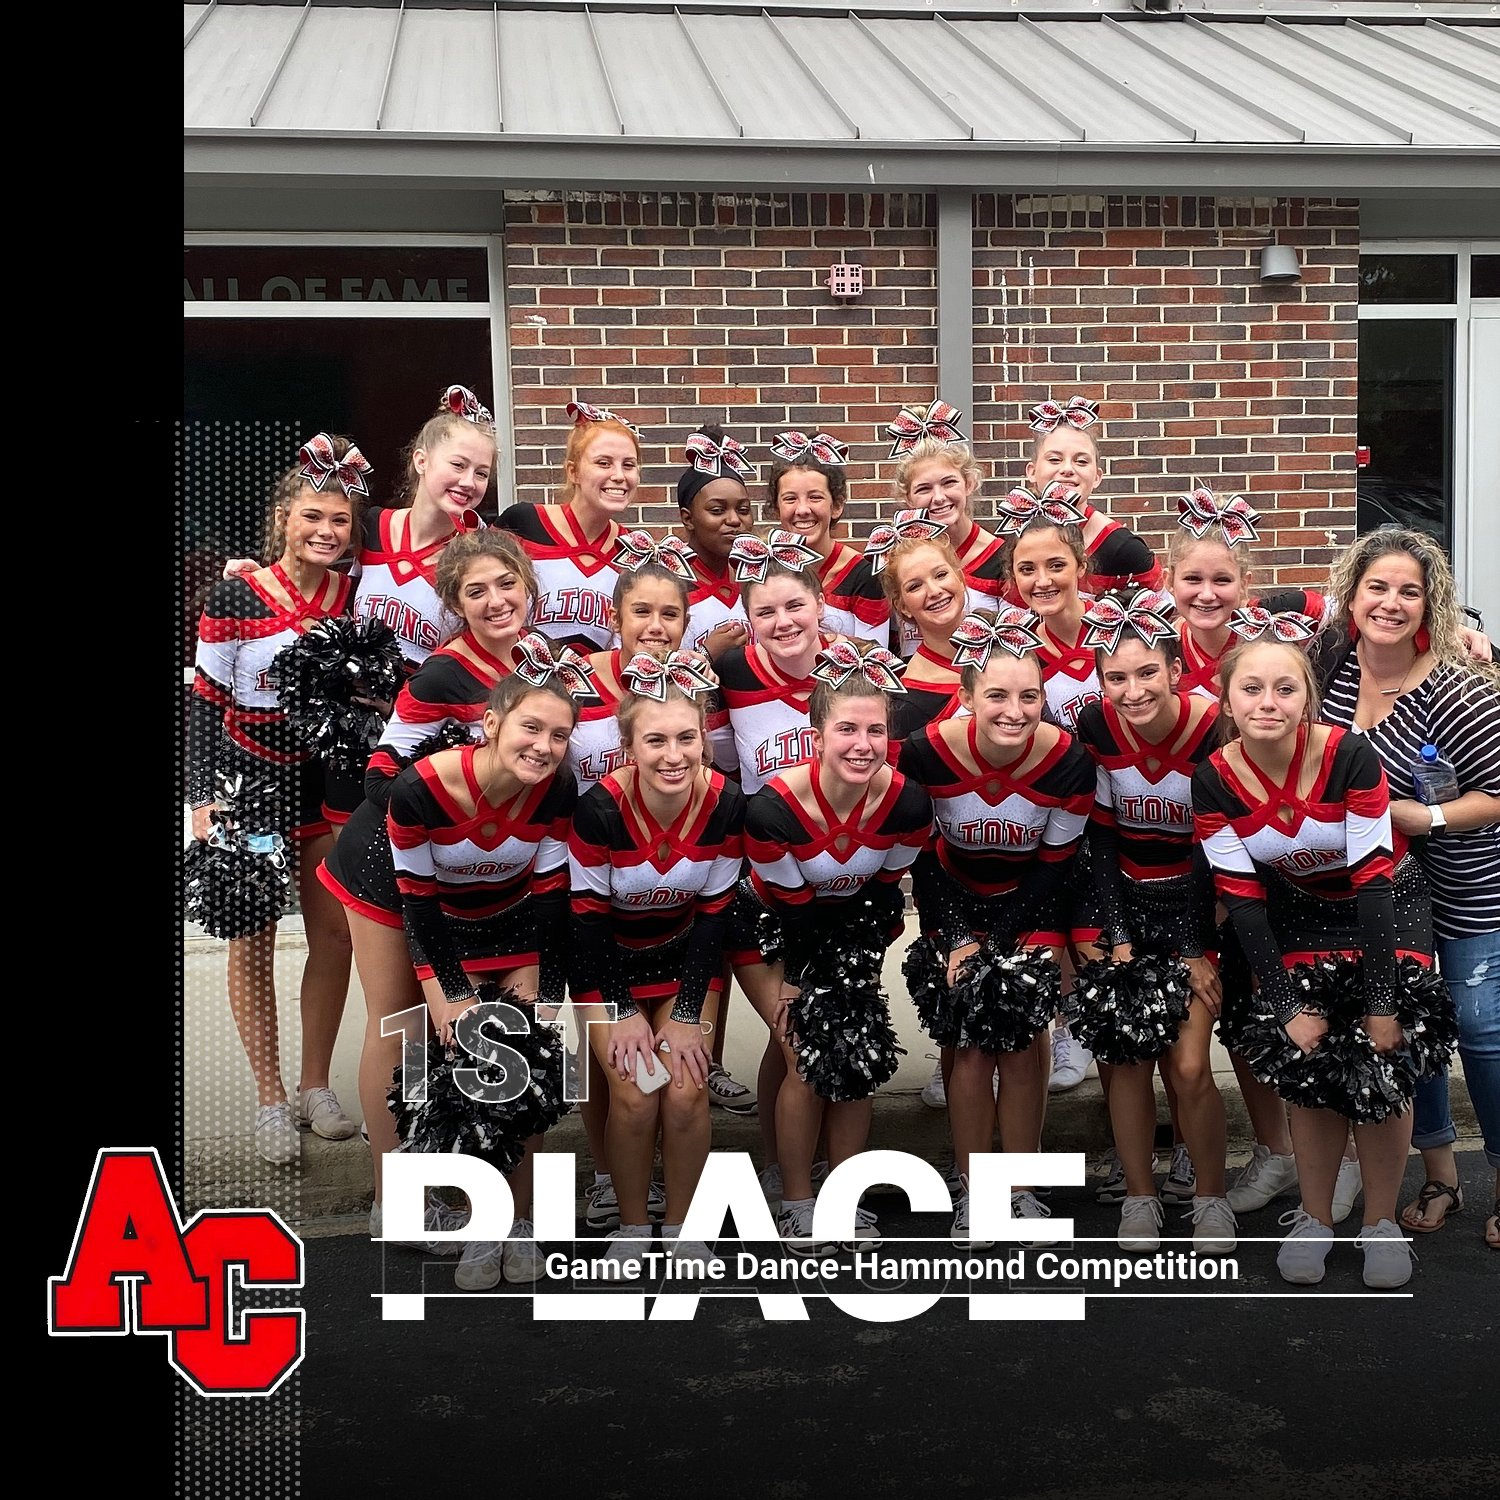 Cheer takes 1st place